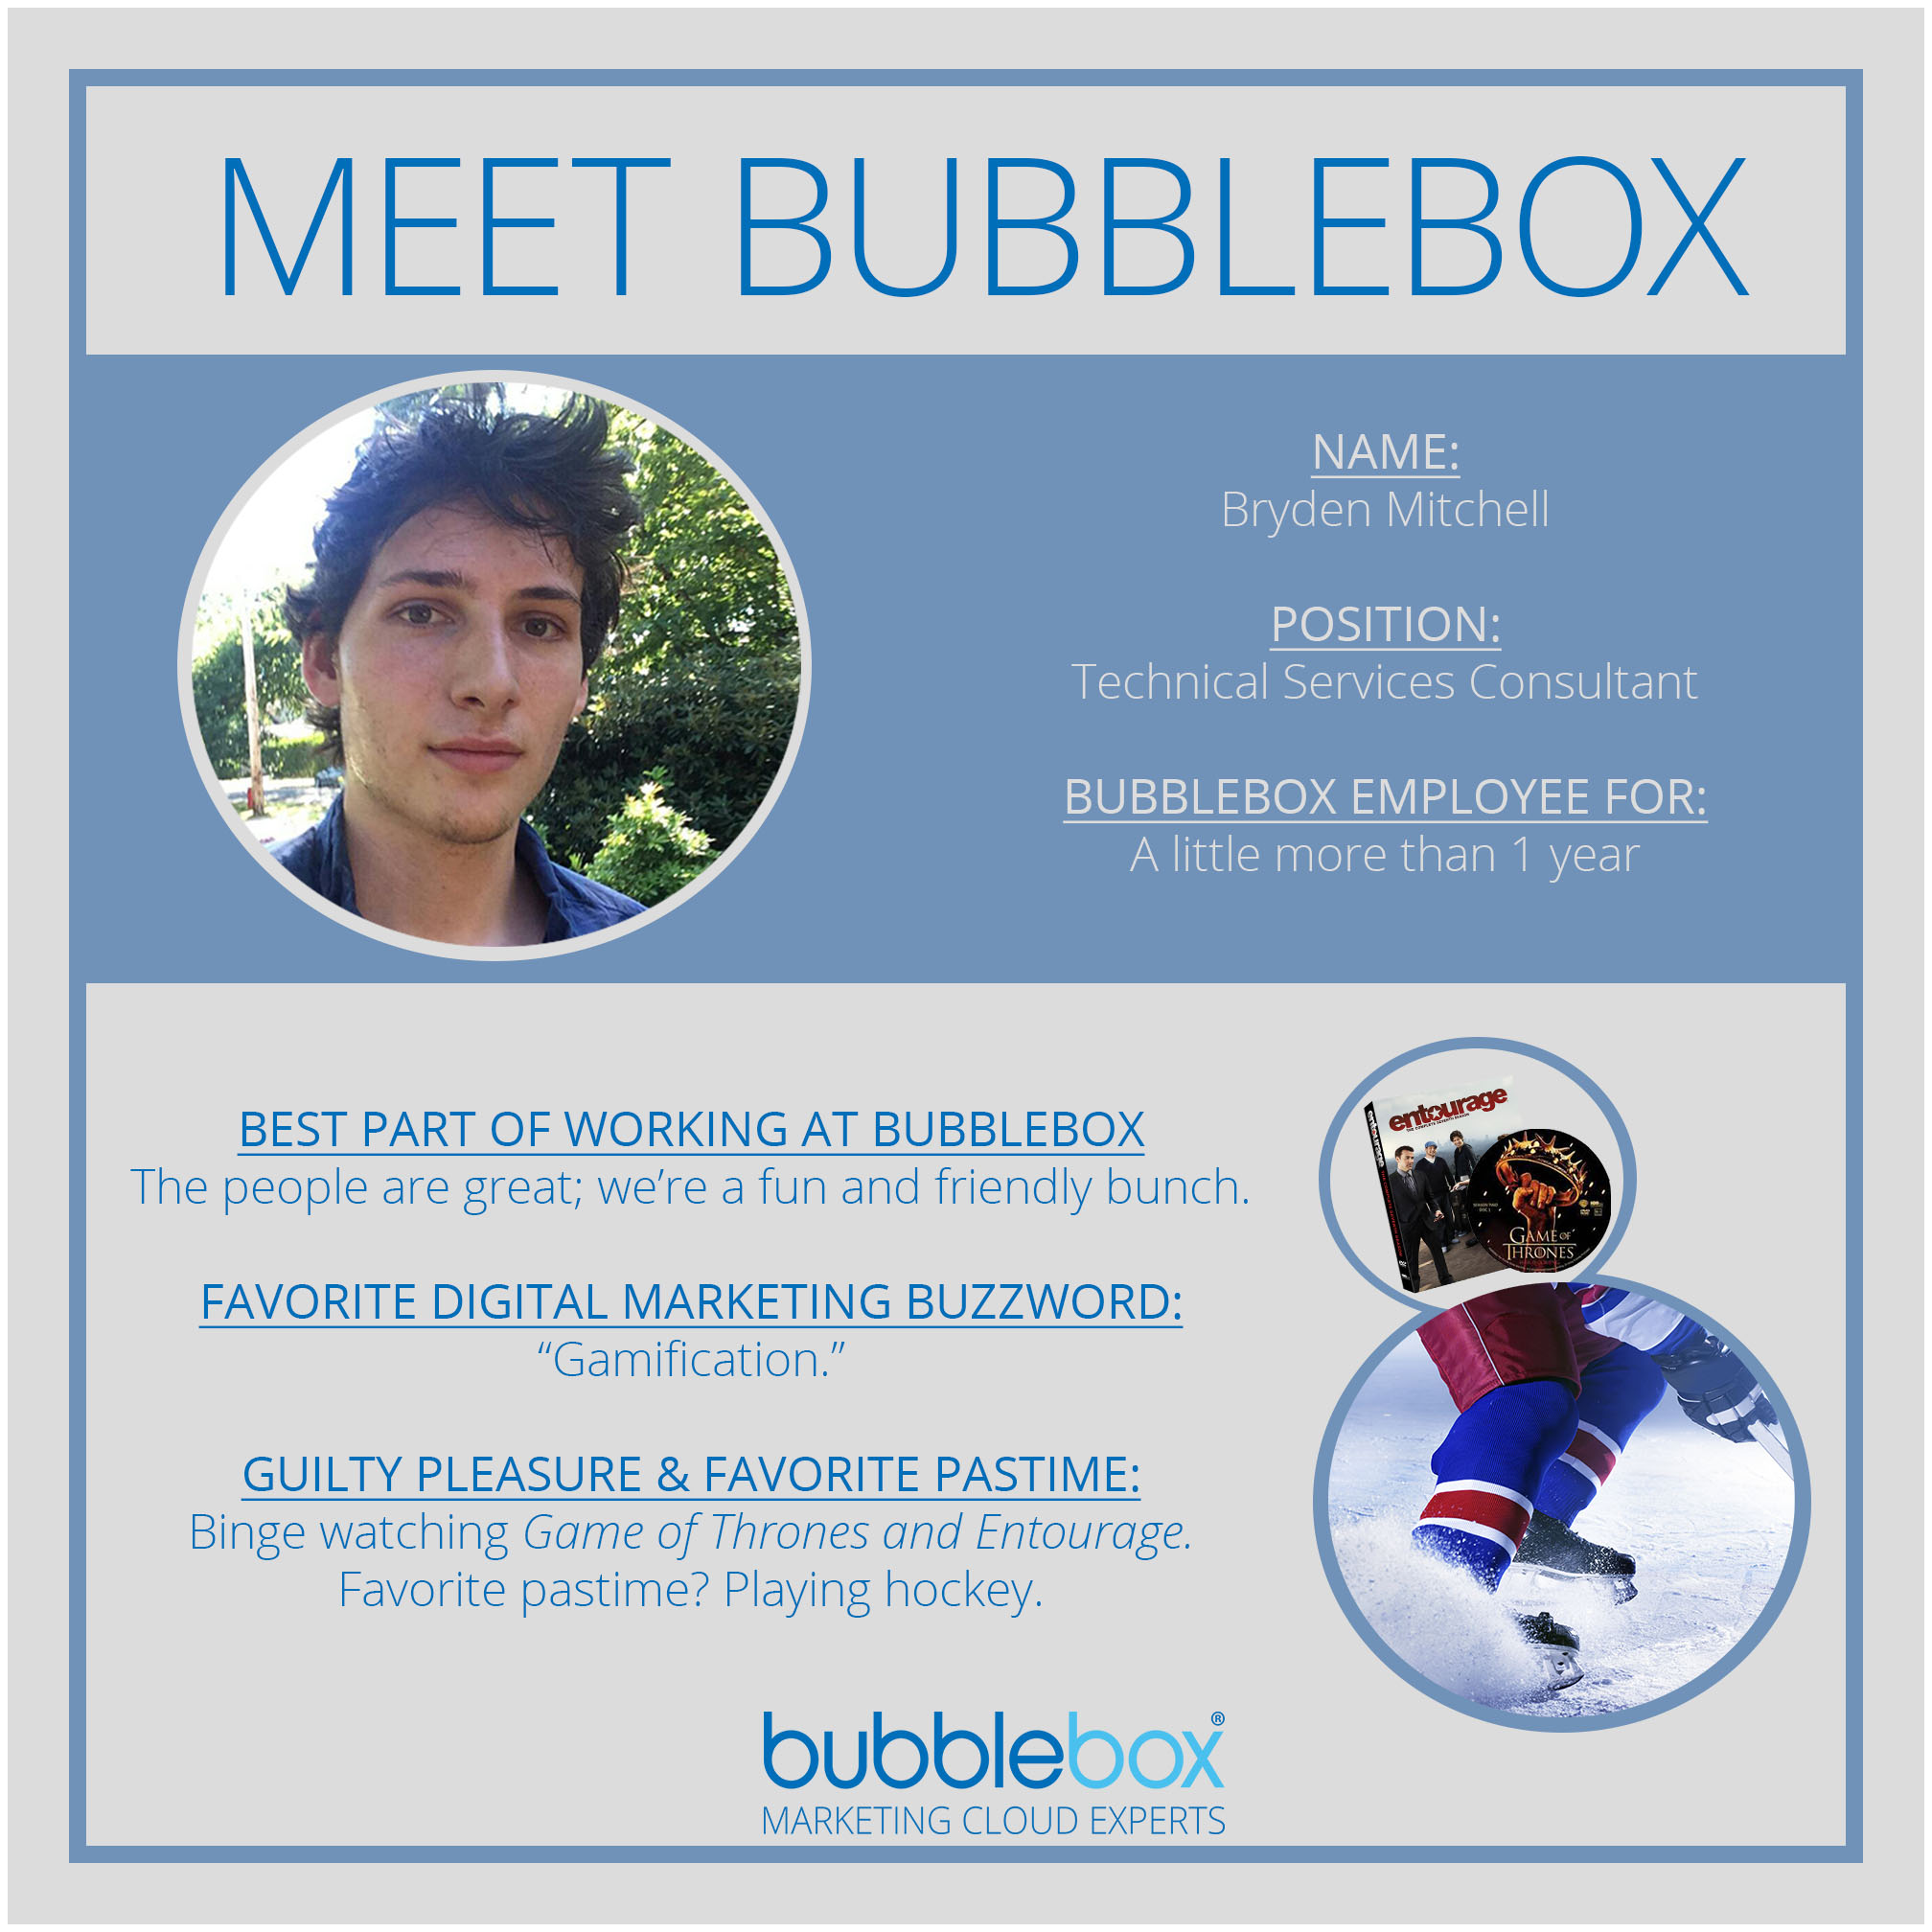 Meet Bubblebox Bryden